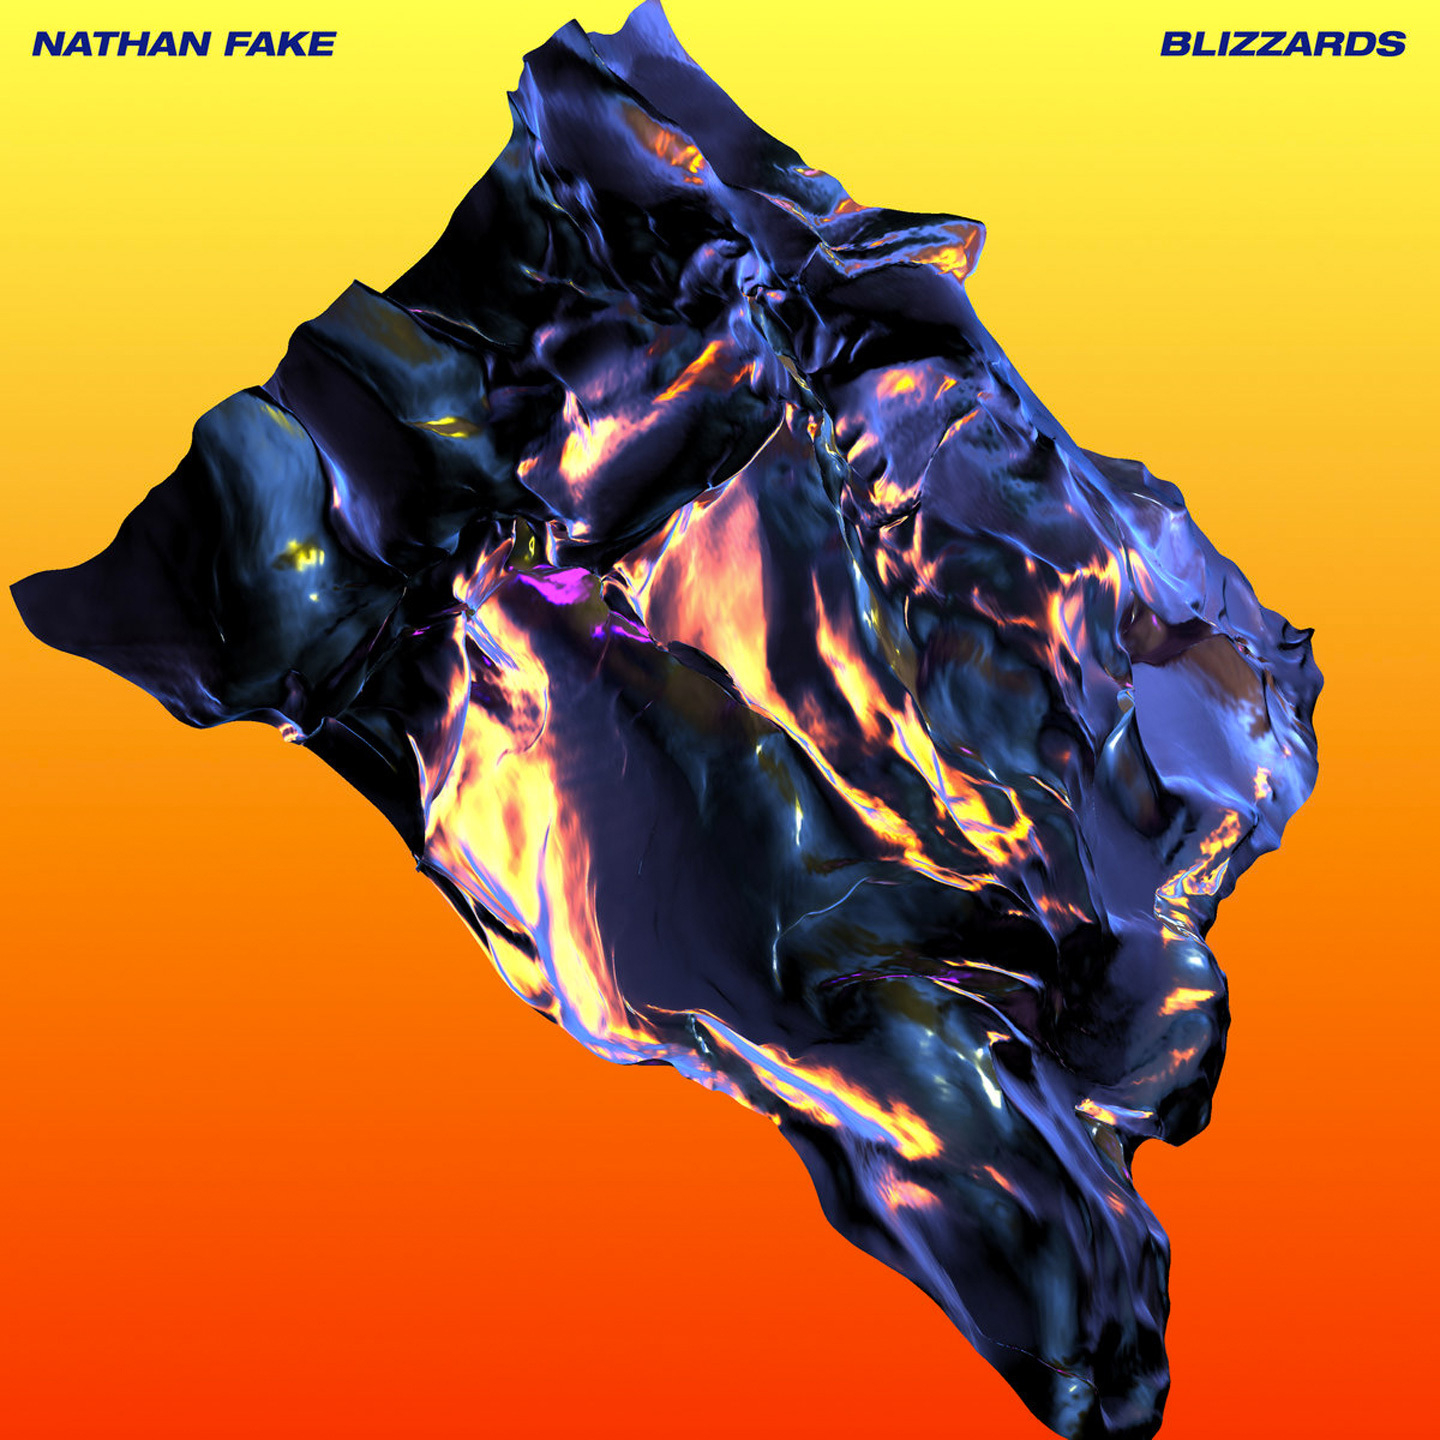 Nathan Fake - Blizzards